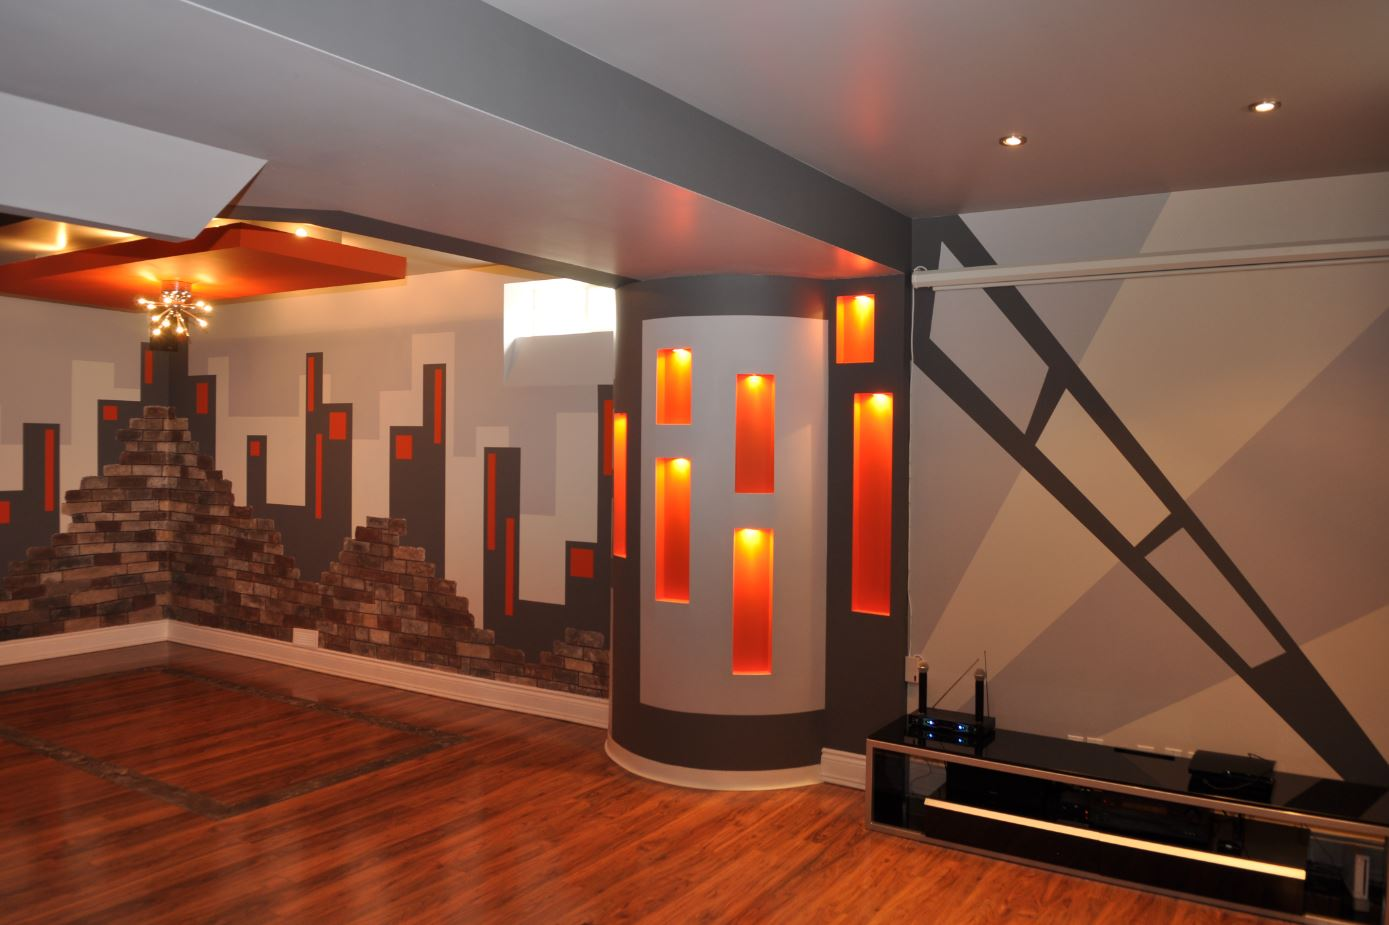 Vinyl Wall Murals wall mural | lexjet blog - part 2